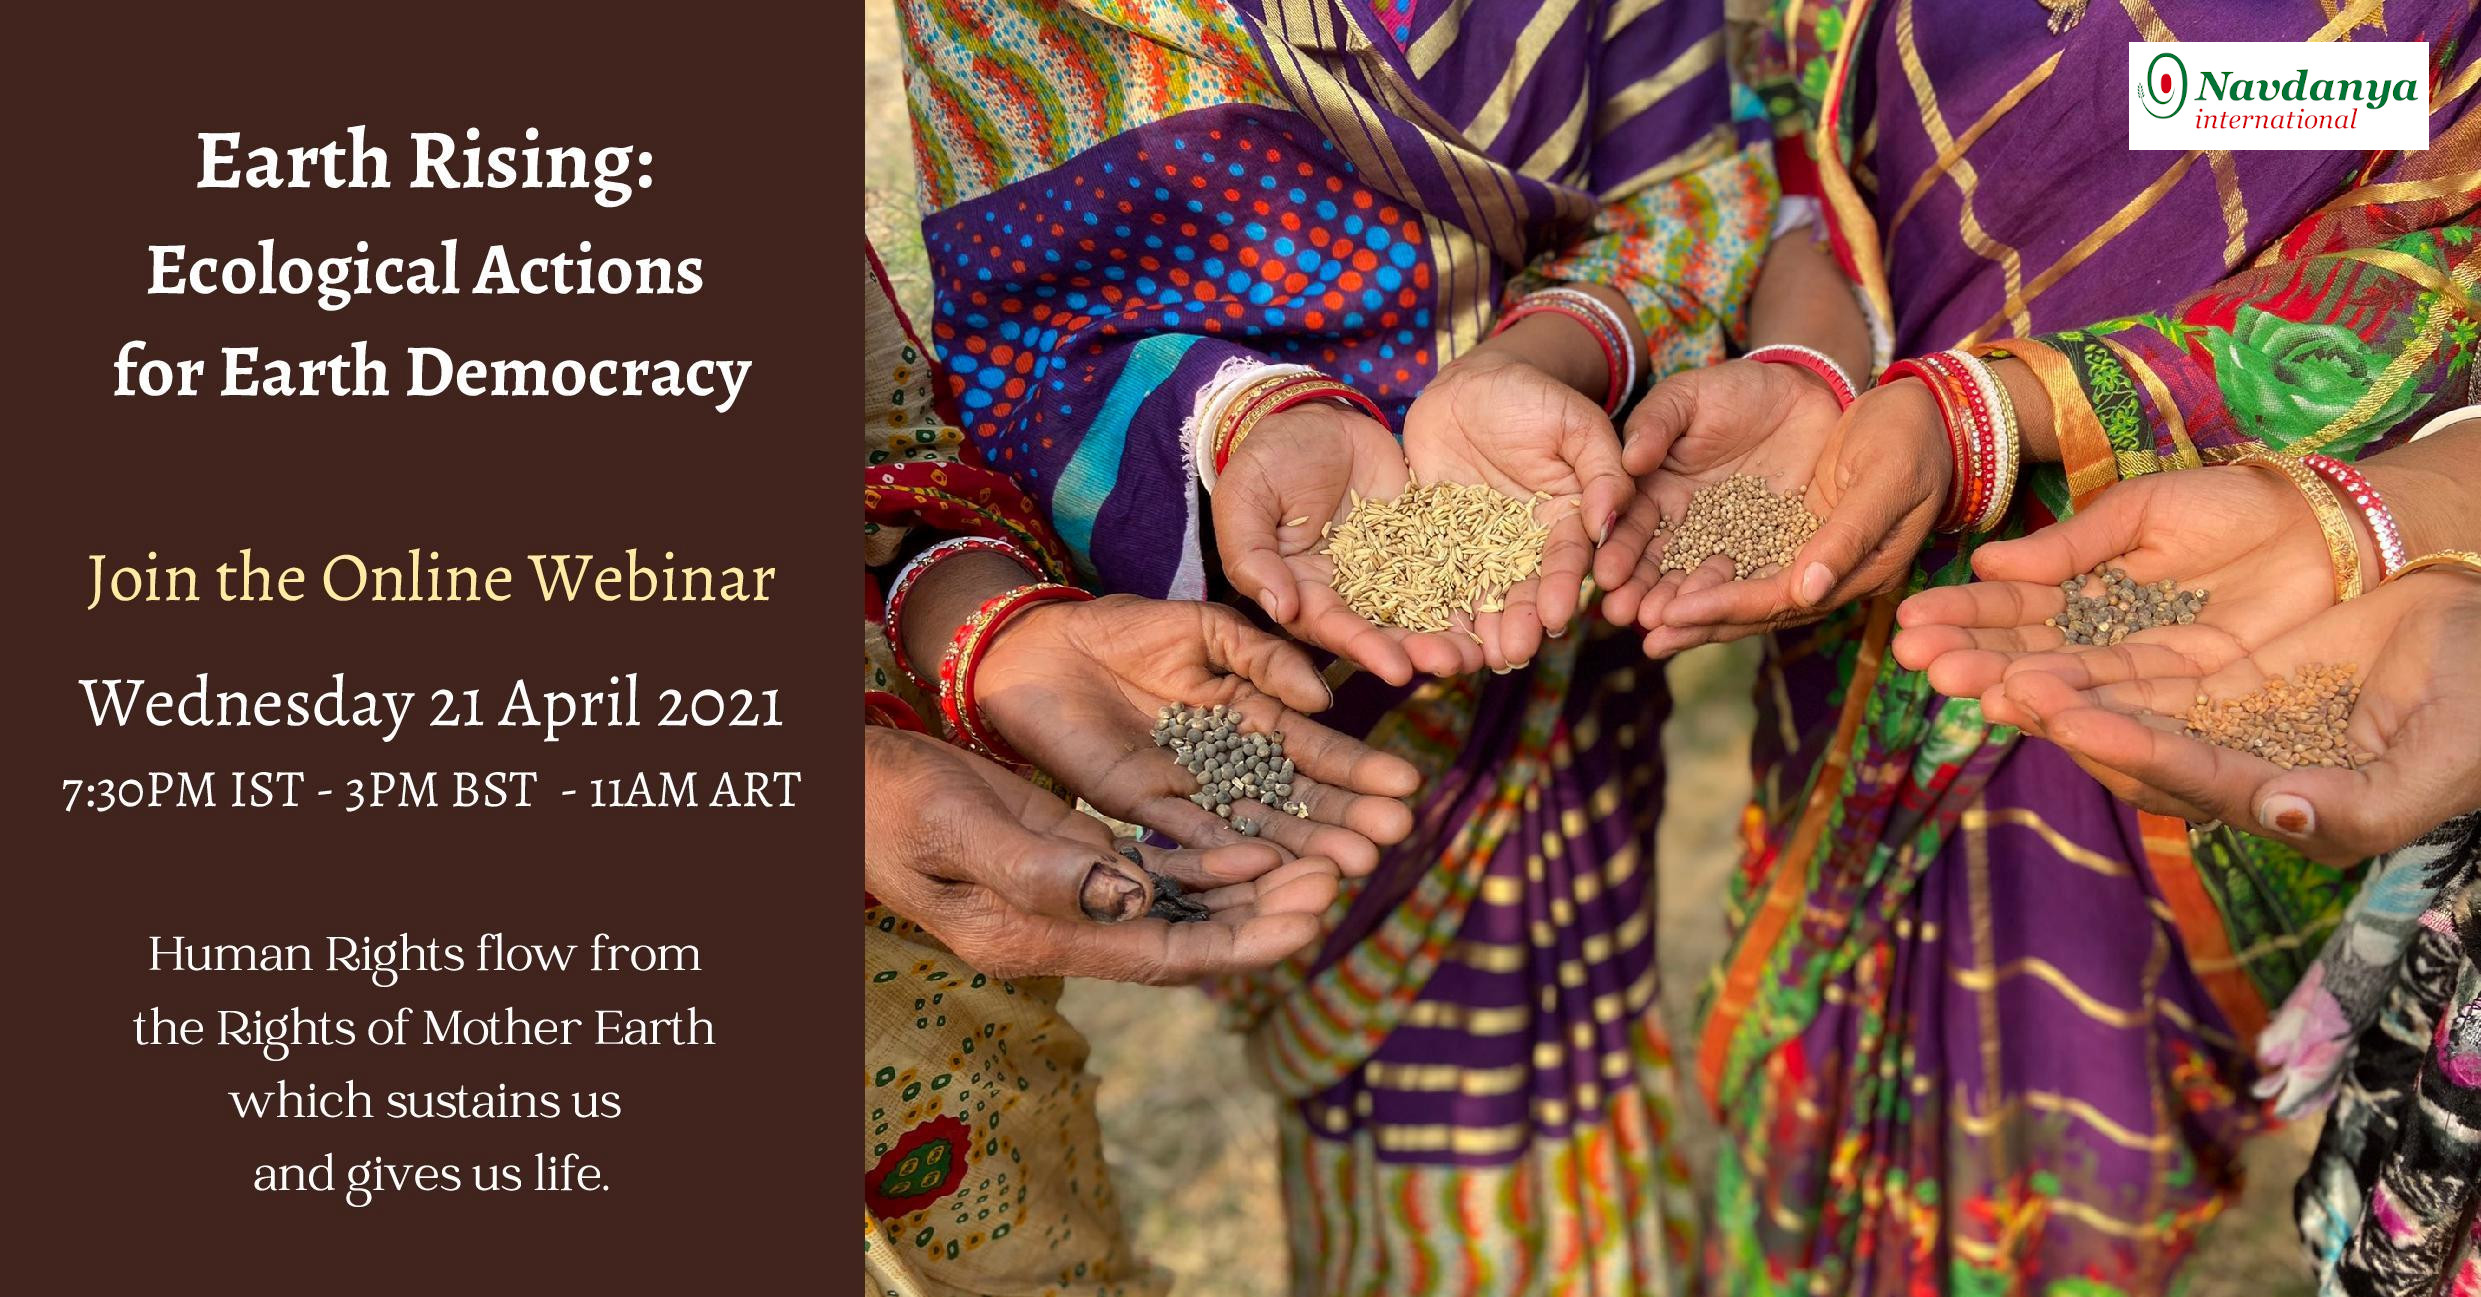 Webinar: Earth Rising: Ecological Actions for Earth Democracy